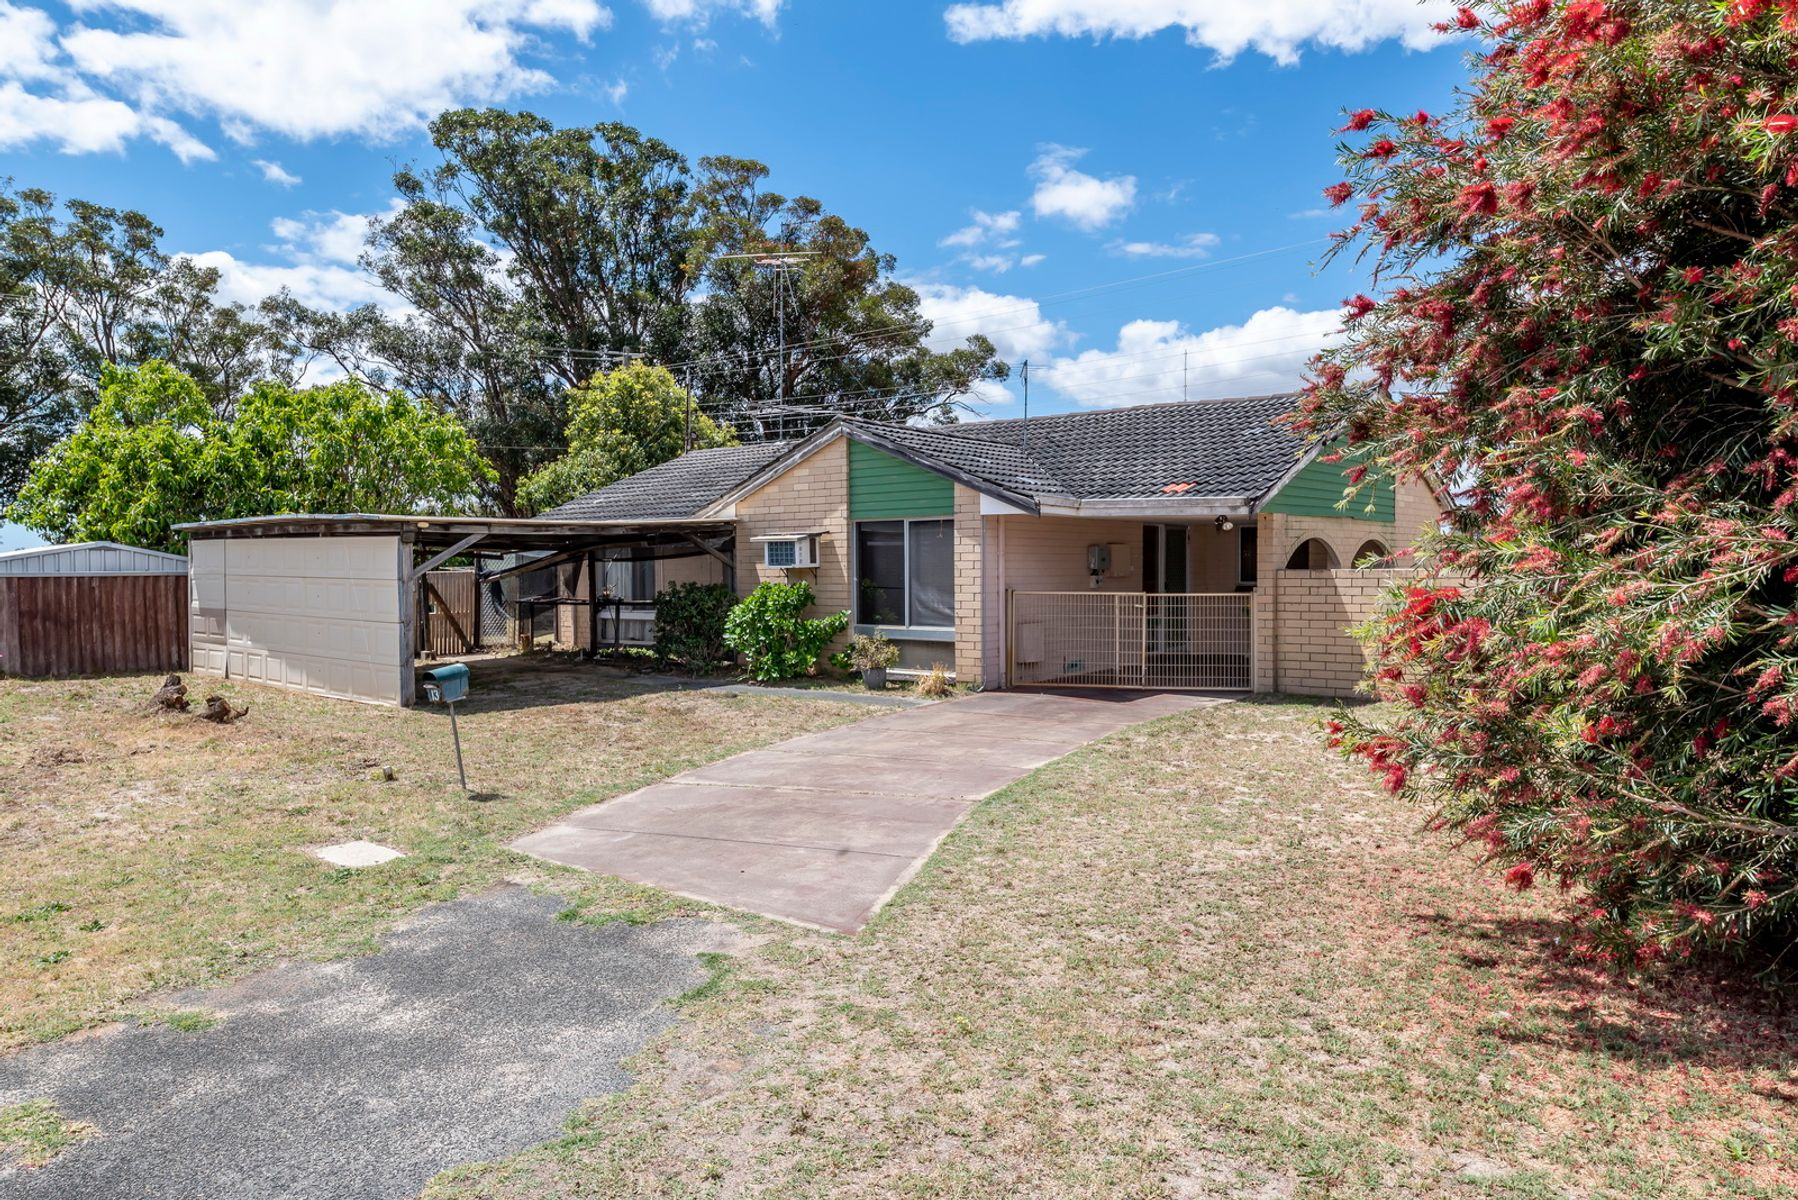 13 Jacksonia Close, Pinjarra, WA 6208